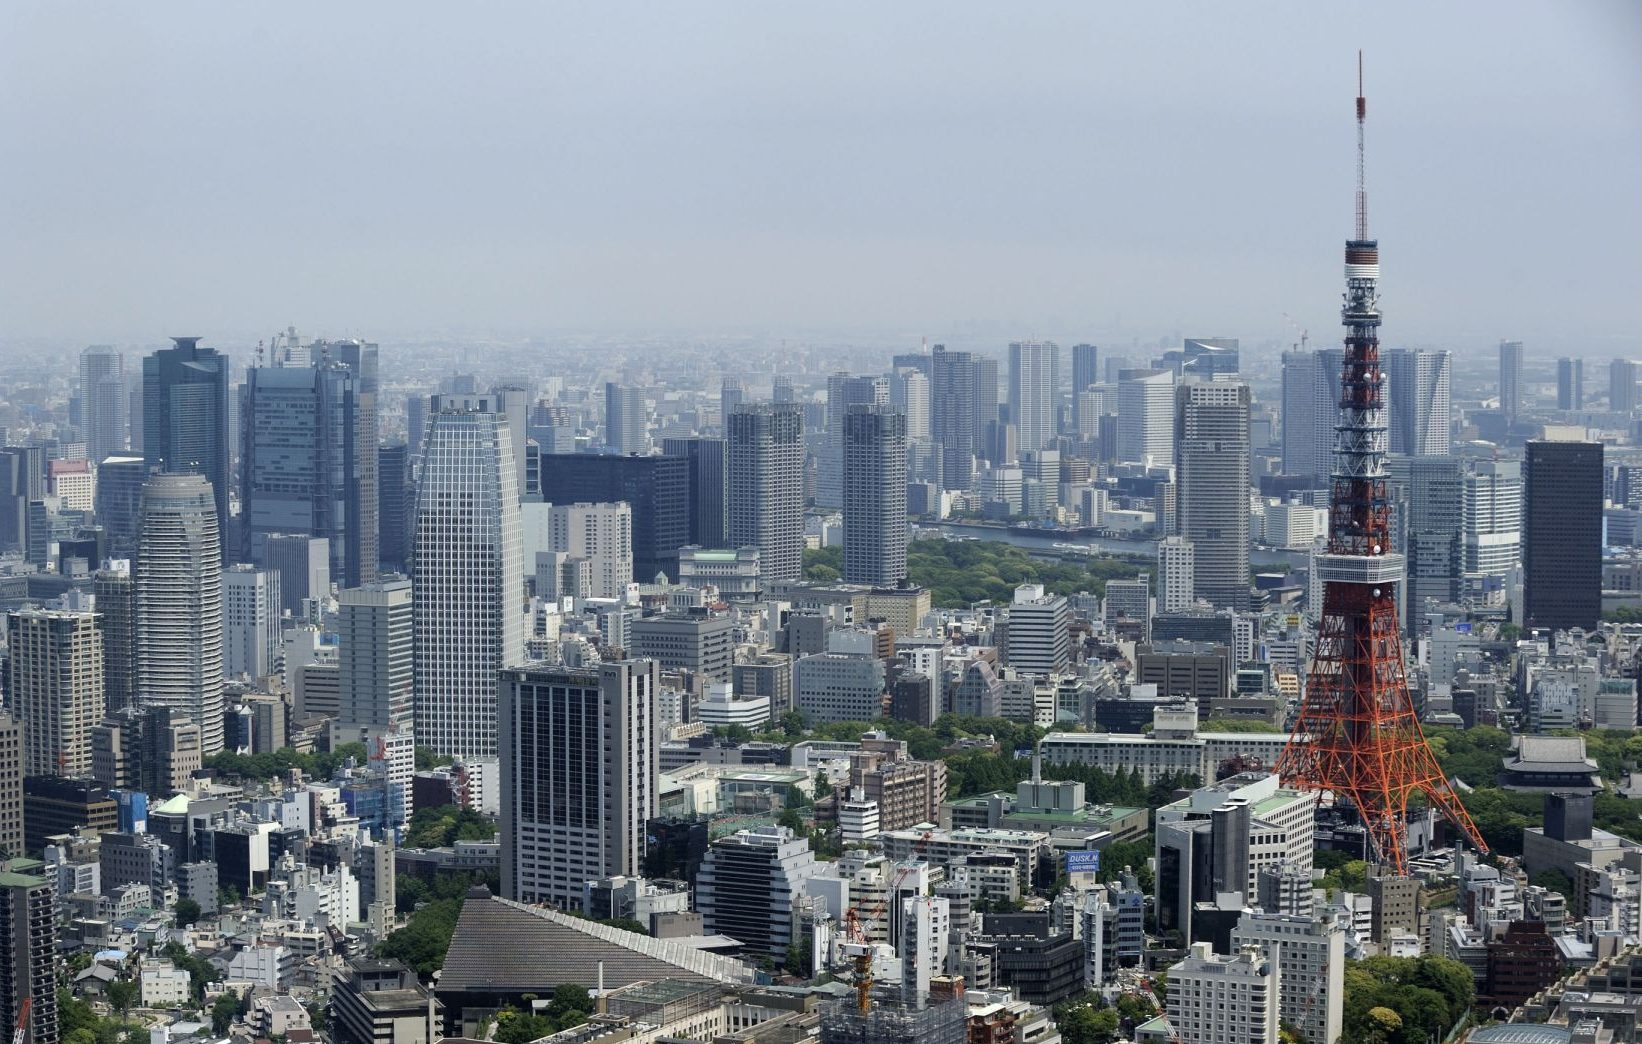 Japan's Economy and the Heart of Tokyo